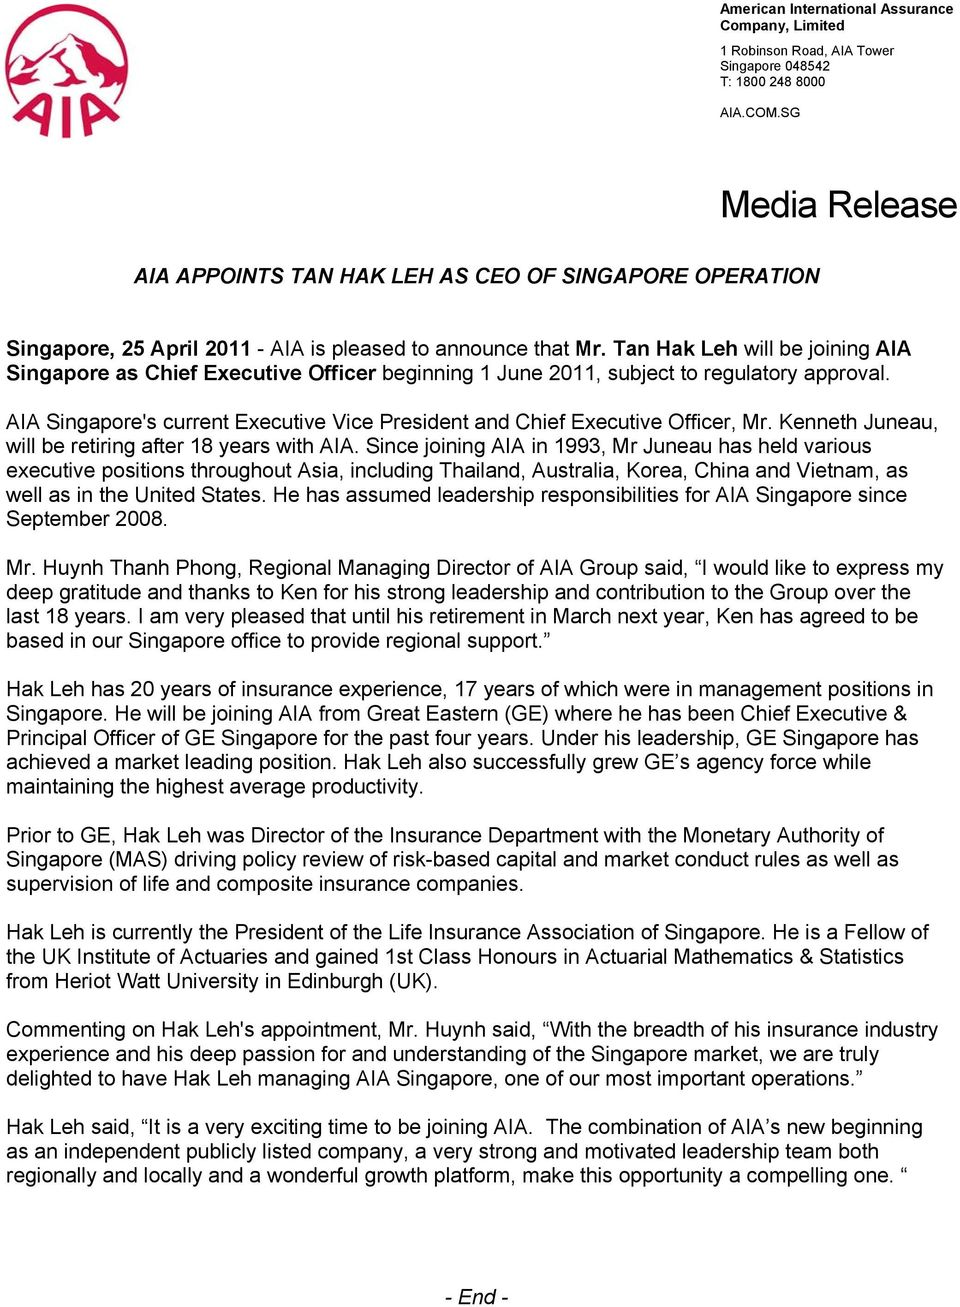 Tan Hak Leh will be joining AIA Singapore as Chief Executive Officer beginning 1 June 2011, subject to regulatory approval.